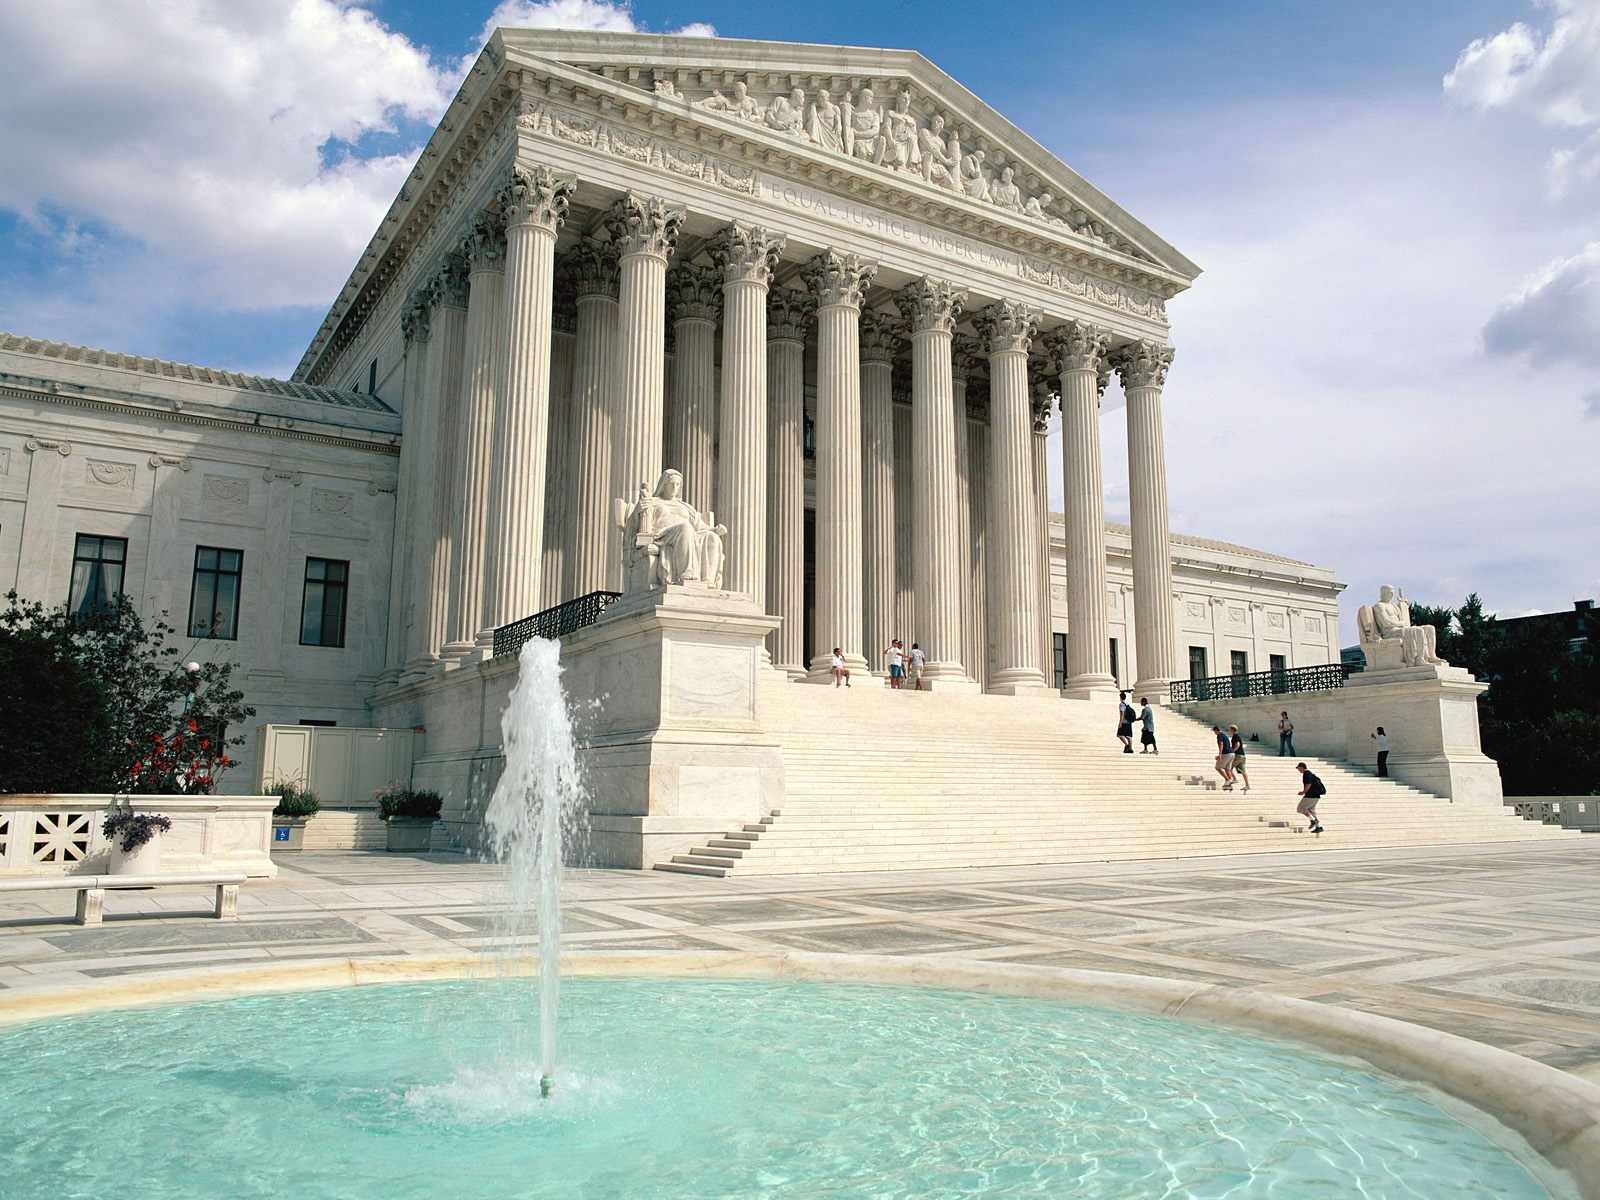 Supreme Court, Washington, DC 733.63 Kb